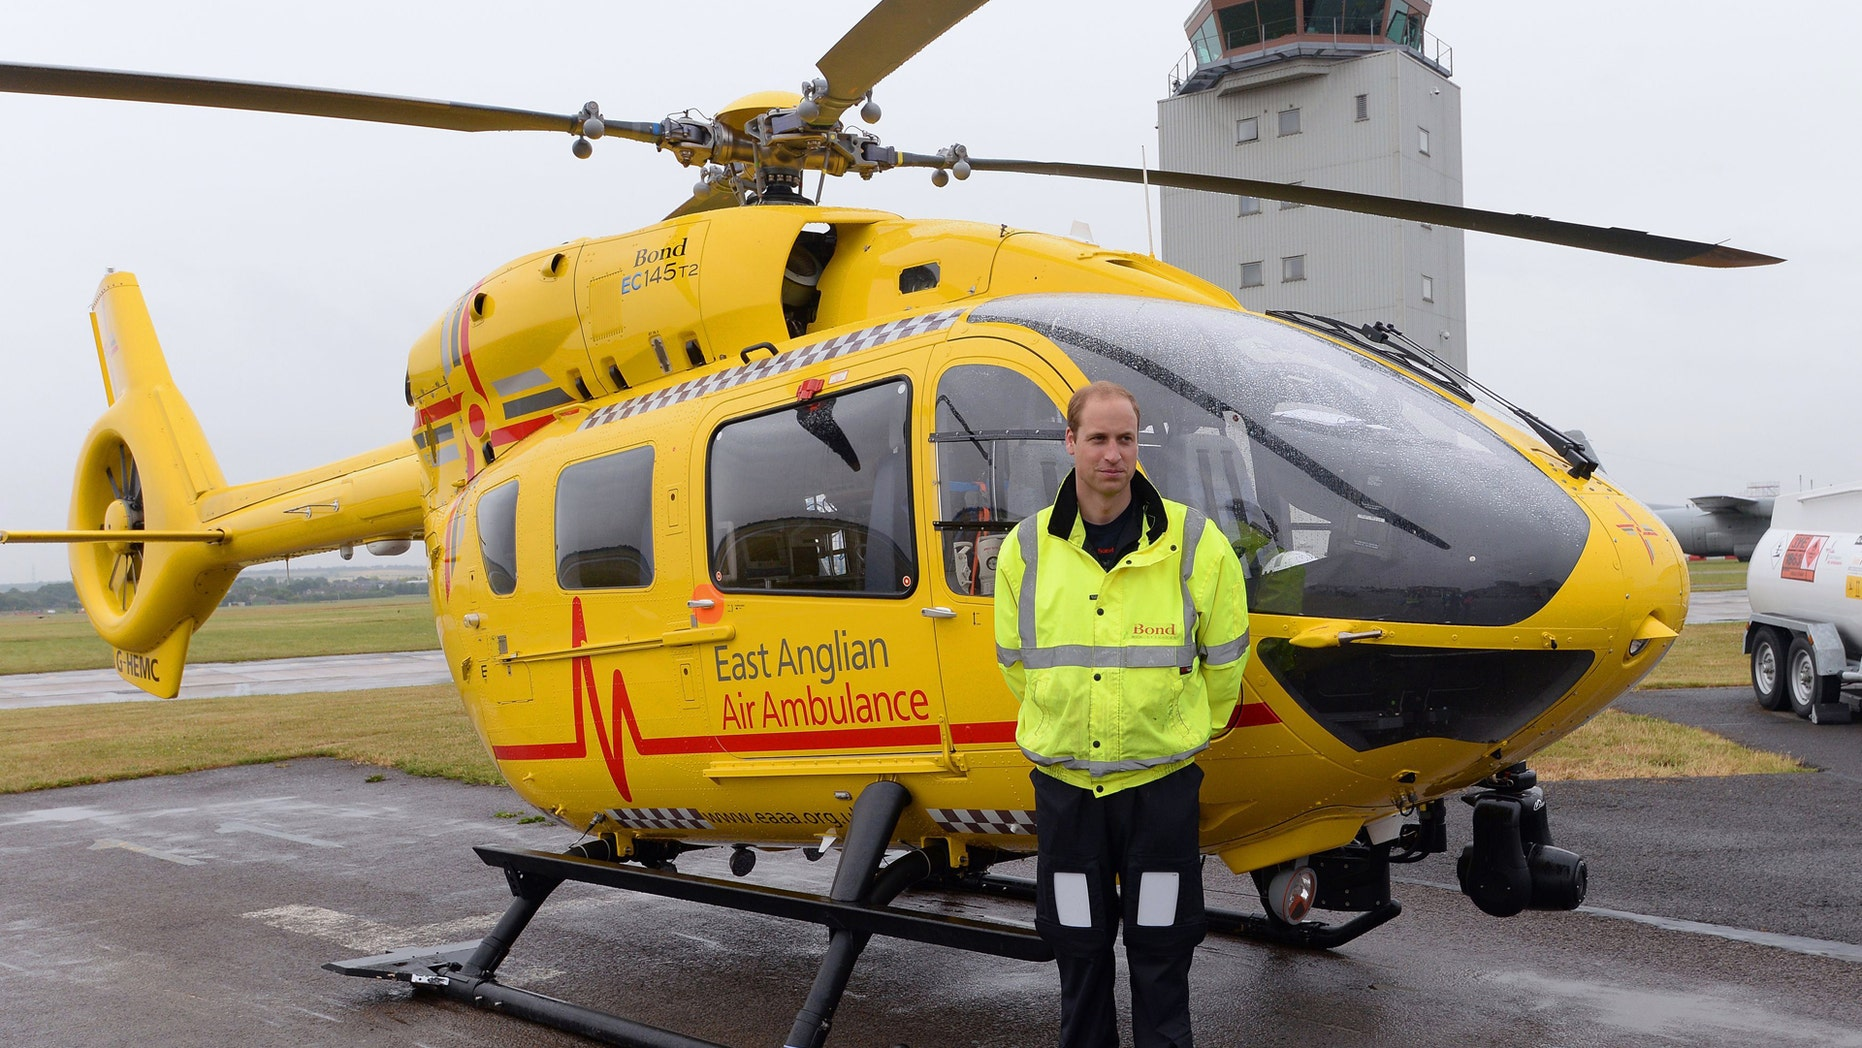 File photo - Britain's Prince William poses by his helicopter as he begins his new job as a co-pilot with the East Anglian Air Ambulance (EAAA) at Cambridge Airport, Britain July 13, 2015. (REUTERS/Stefan Rousseau/pool)